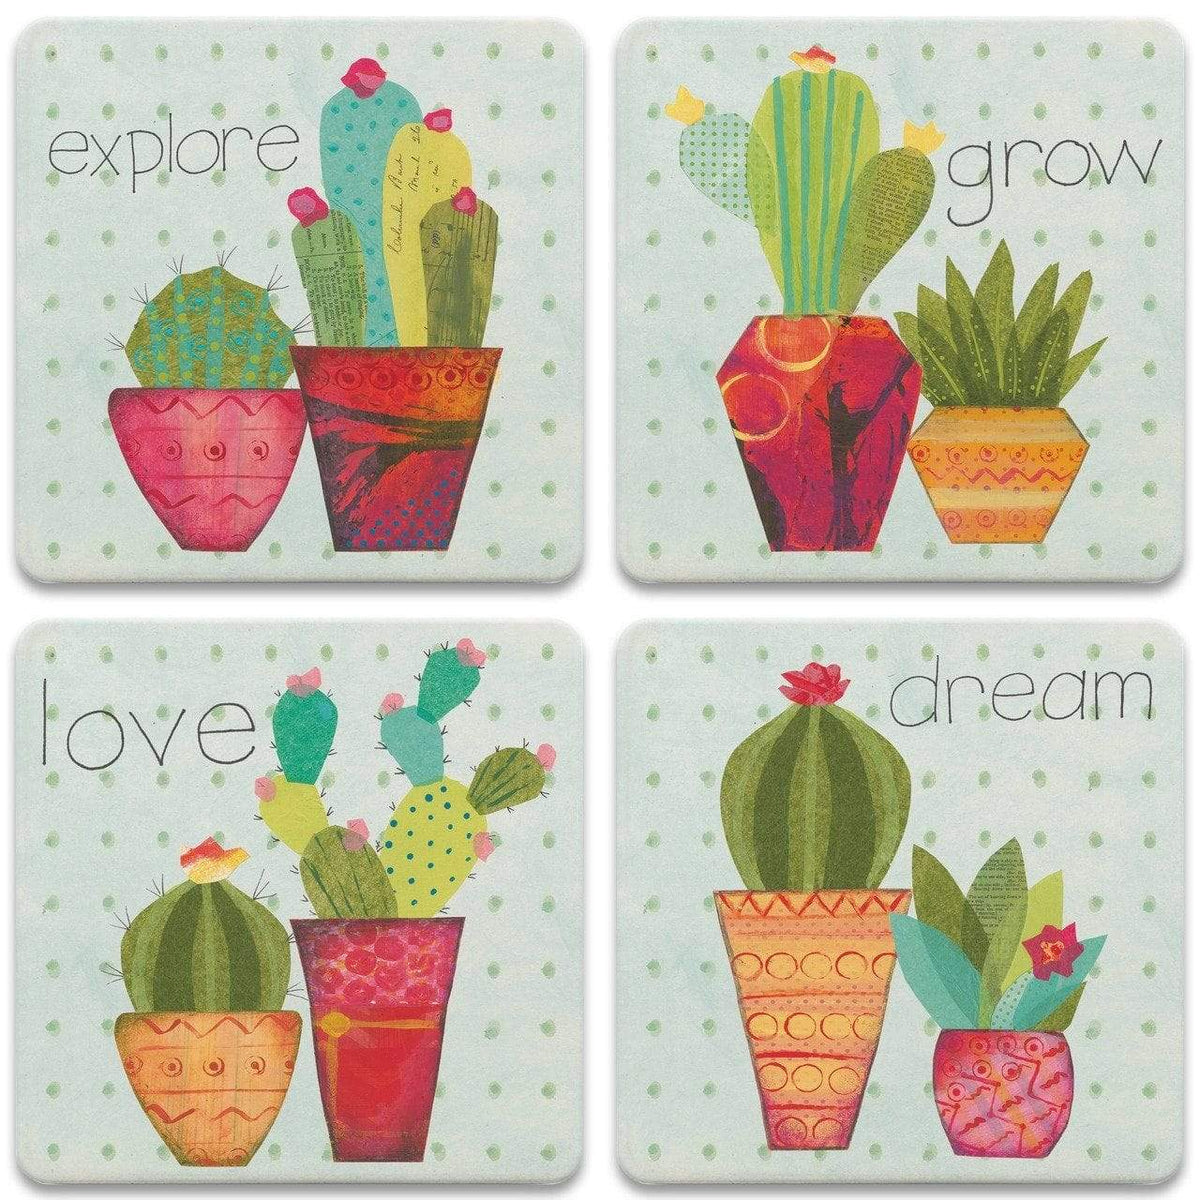 Southwest Cactus Stone Coasters - Set of 4